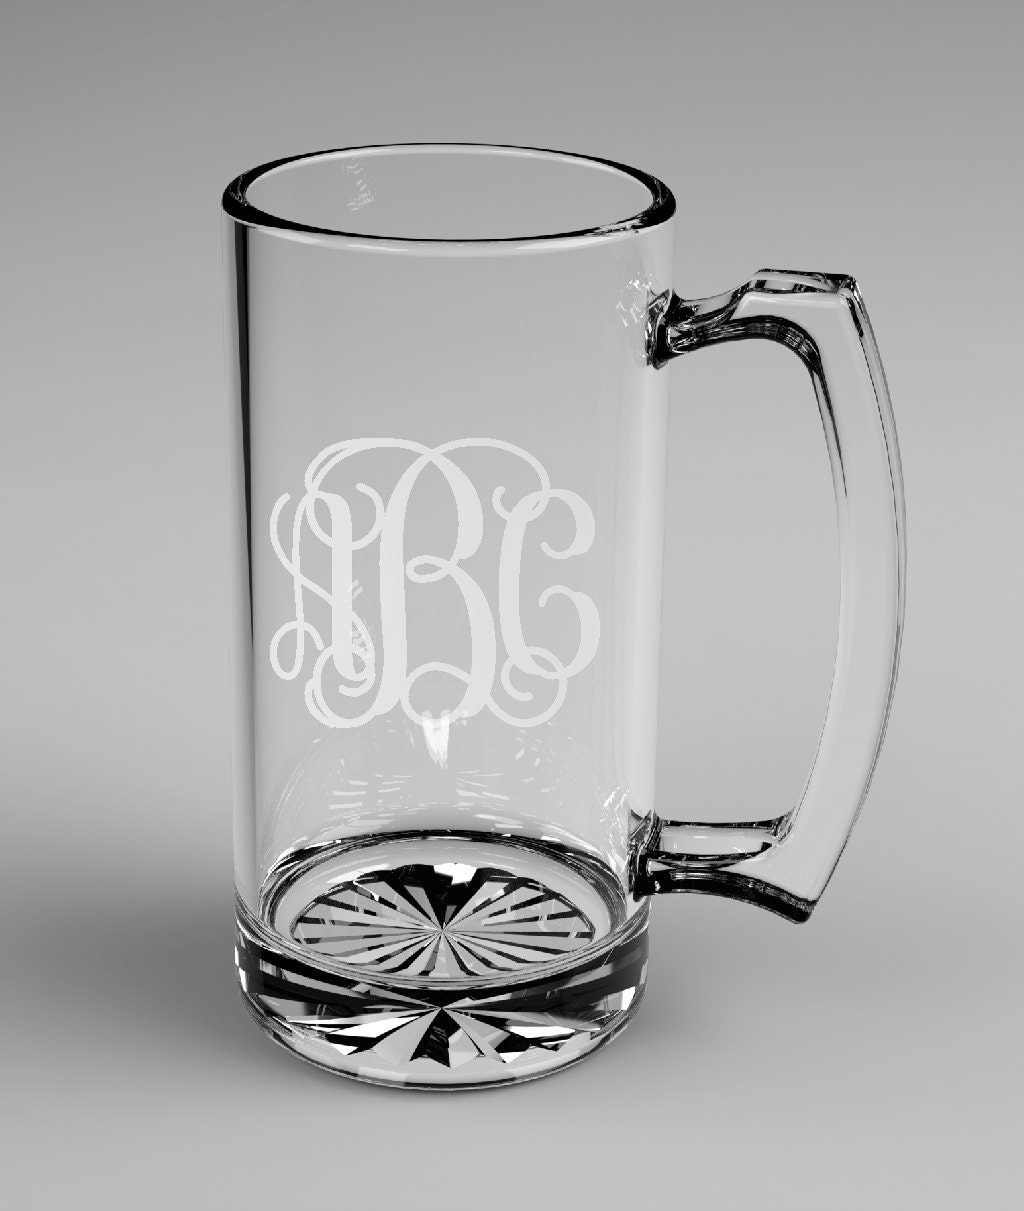 Wedding Gift Beer Mugs : ... Groomsman Vine Monogram Beer Mugs Custom Engraved Wedding Gift